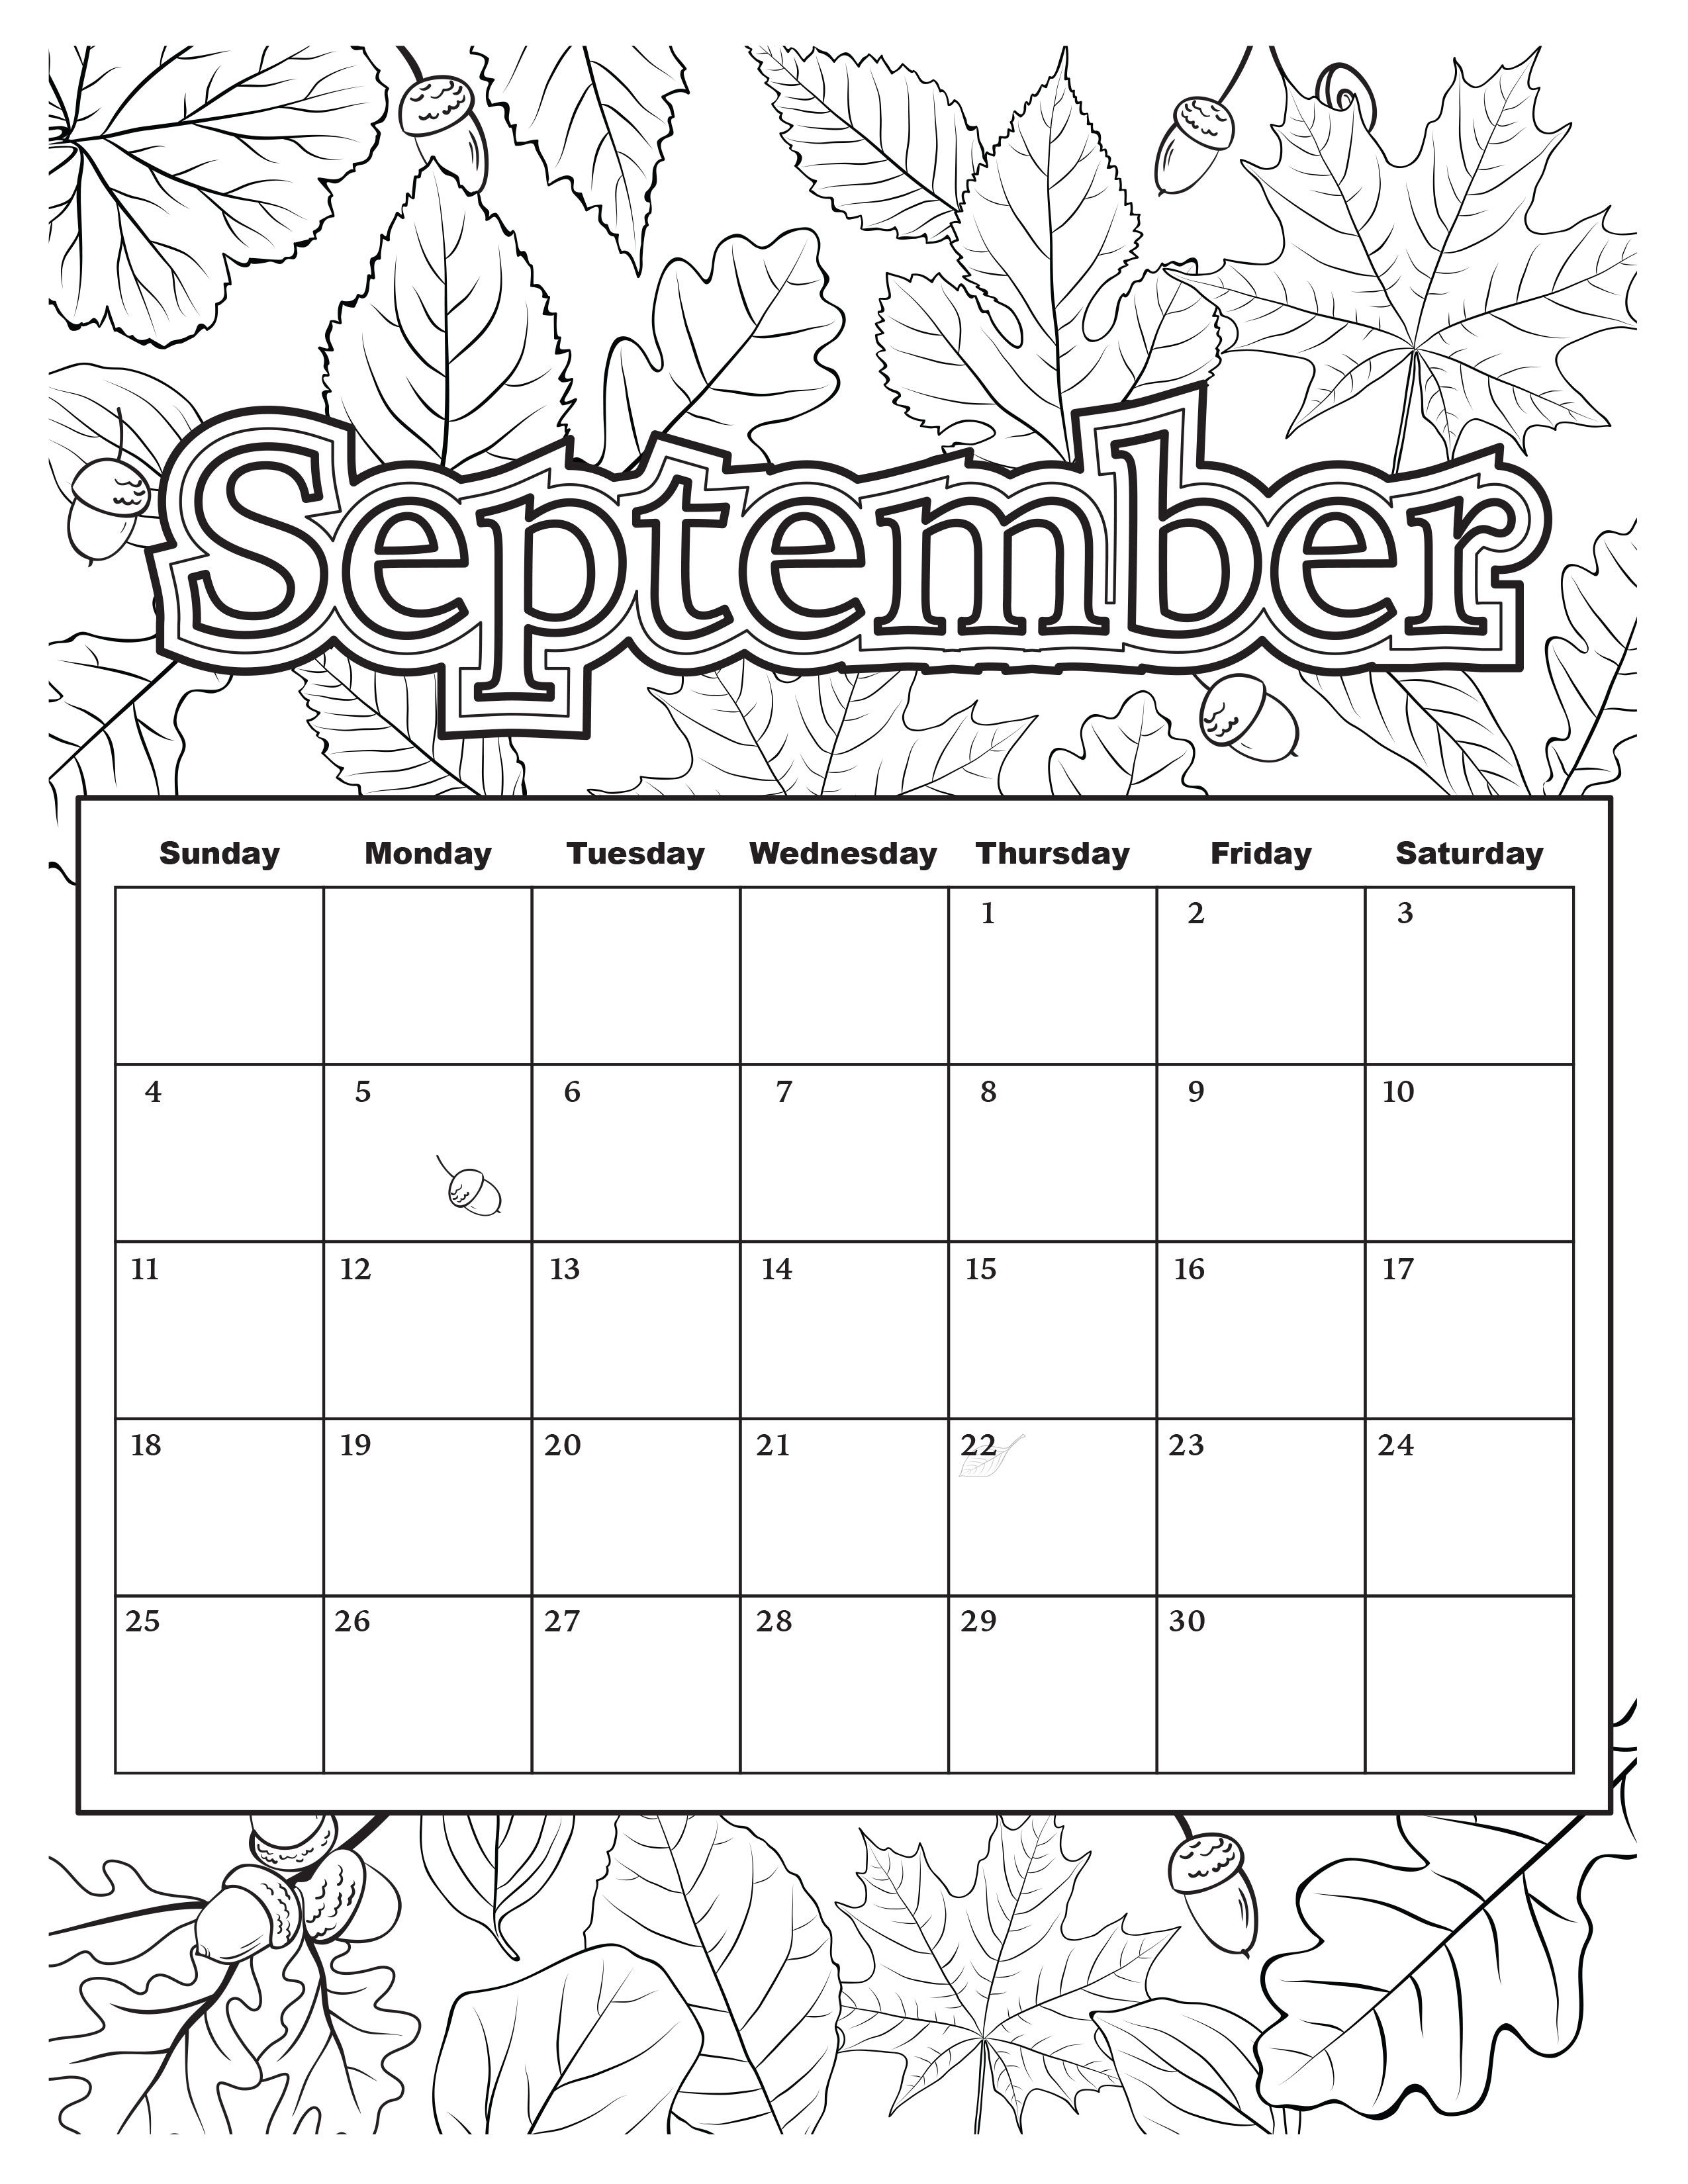 Free coloring pages for june - October Calendar 2017 Printable And Free Blank Calendar Printable Calendars Pinterest Free Blank Calendar October Calendar And Blank Calendar